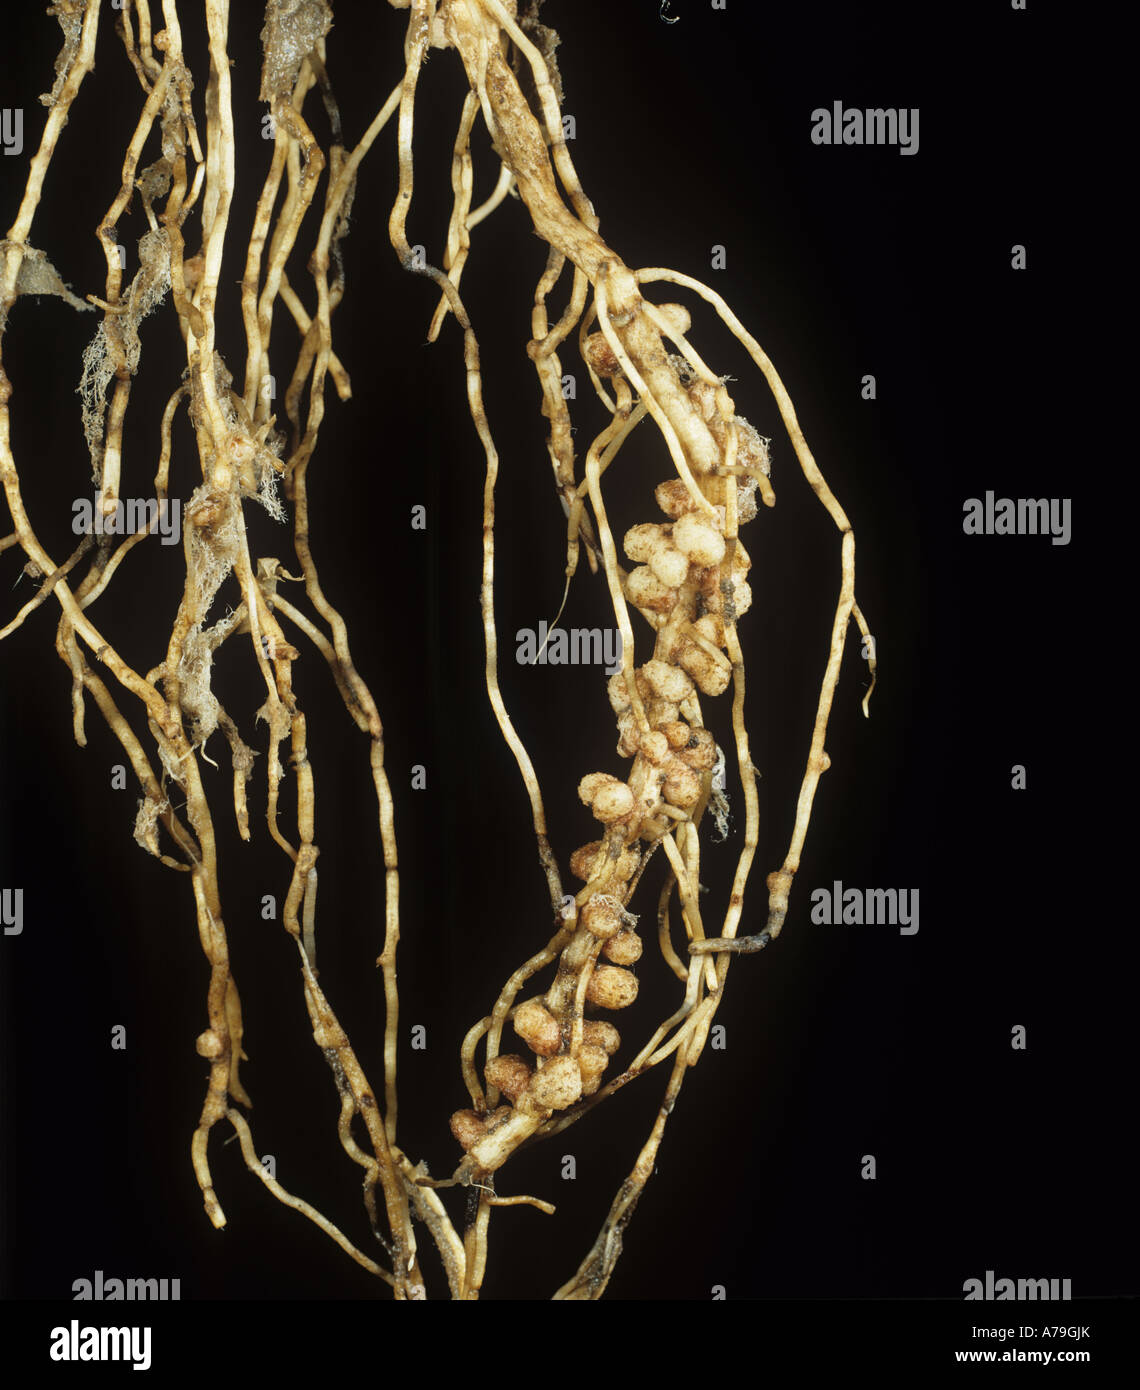 Rhizobium root nodules on Vicia faba field bean for gaseous nitrogen fixation - Stock Image